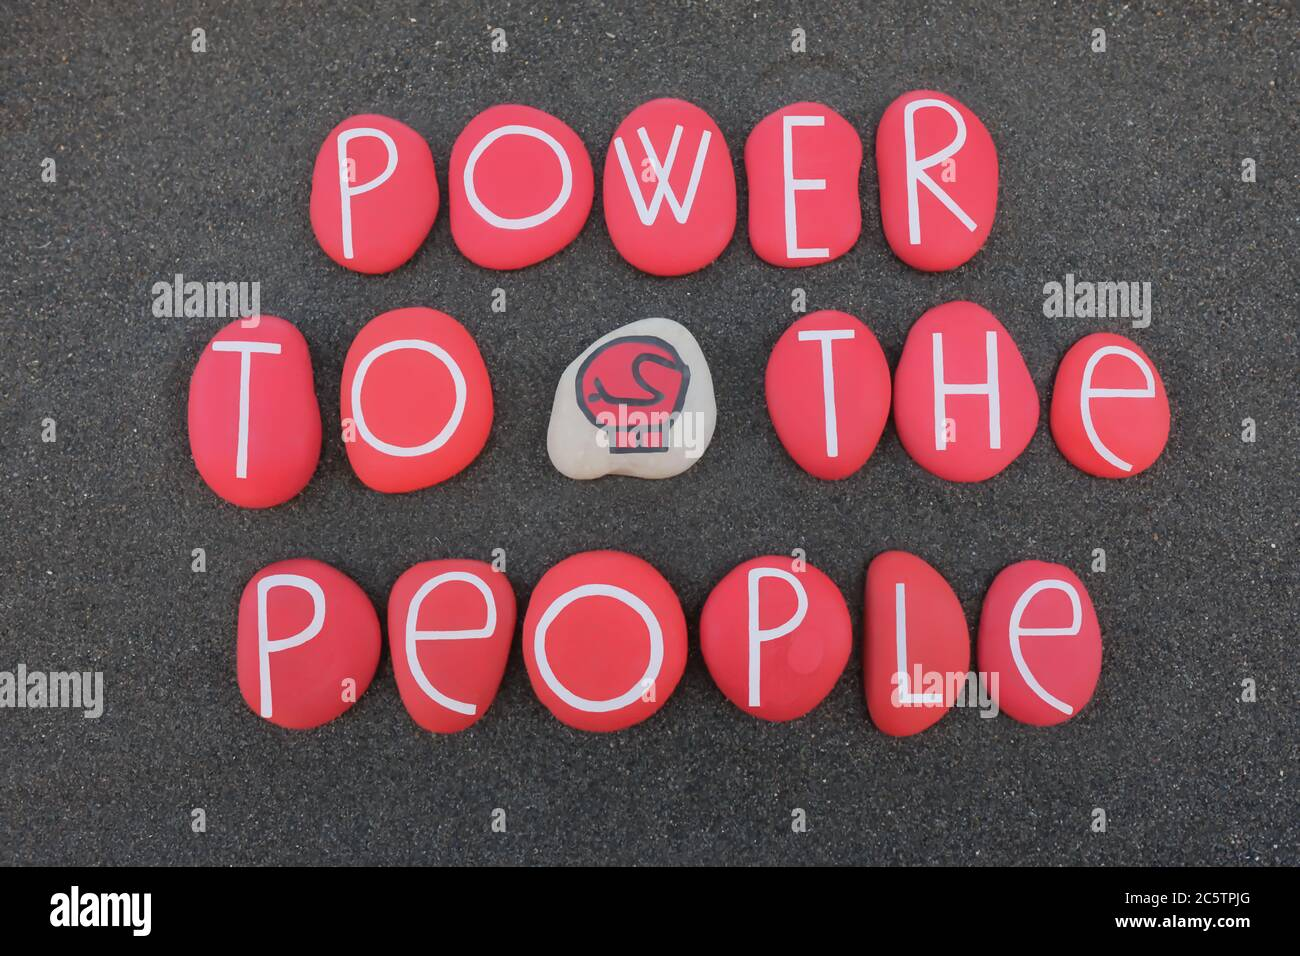 Power to the people, protest slogan composed with red colored stones over black volcanic sand Stock Photo